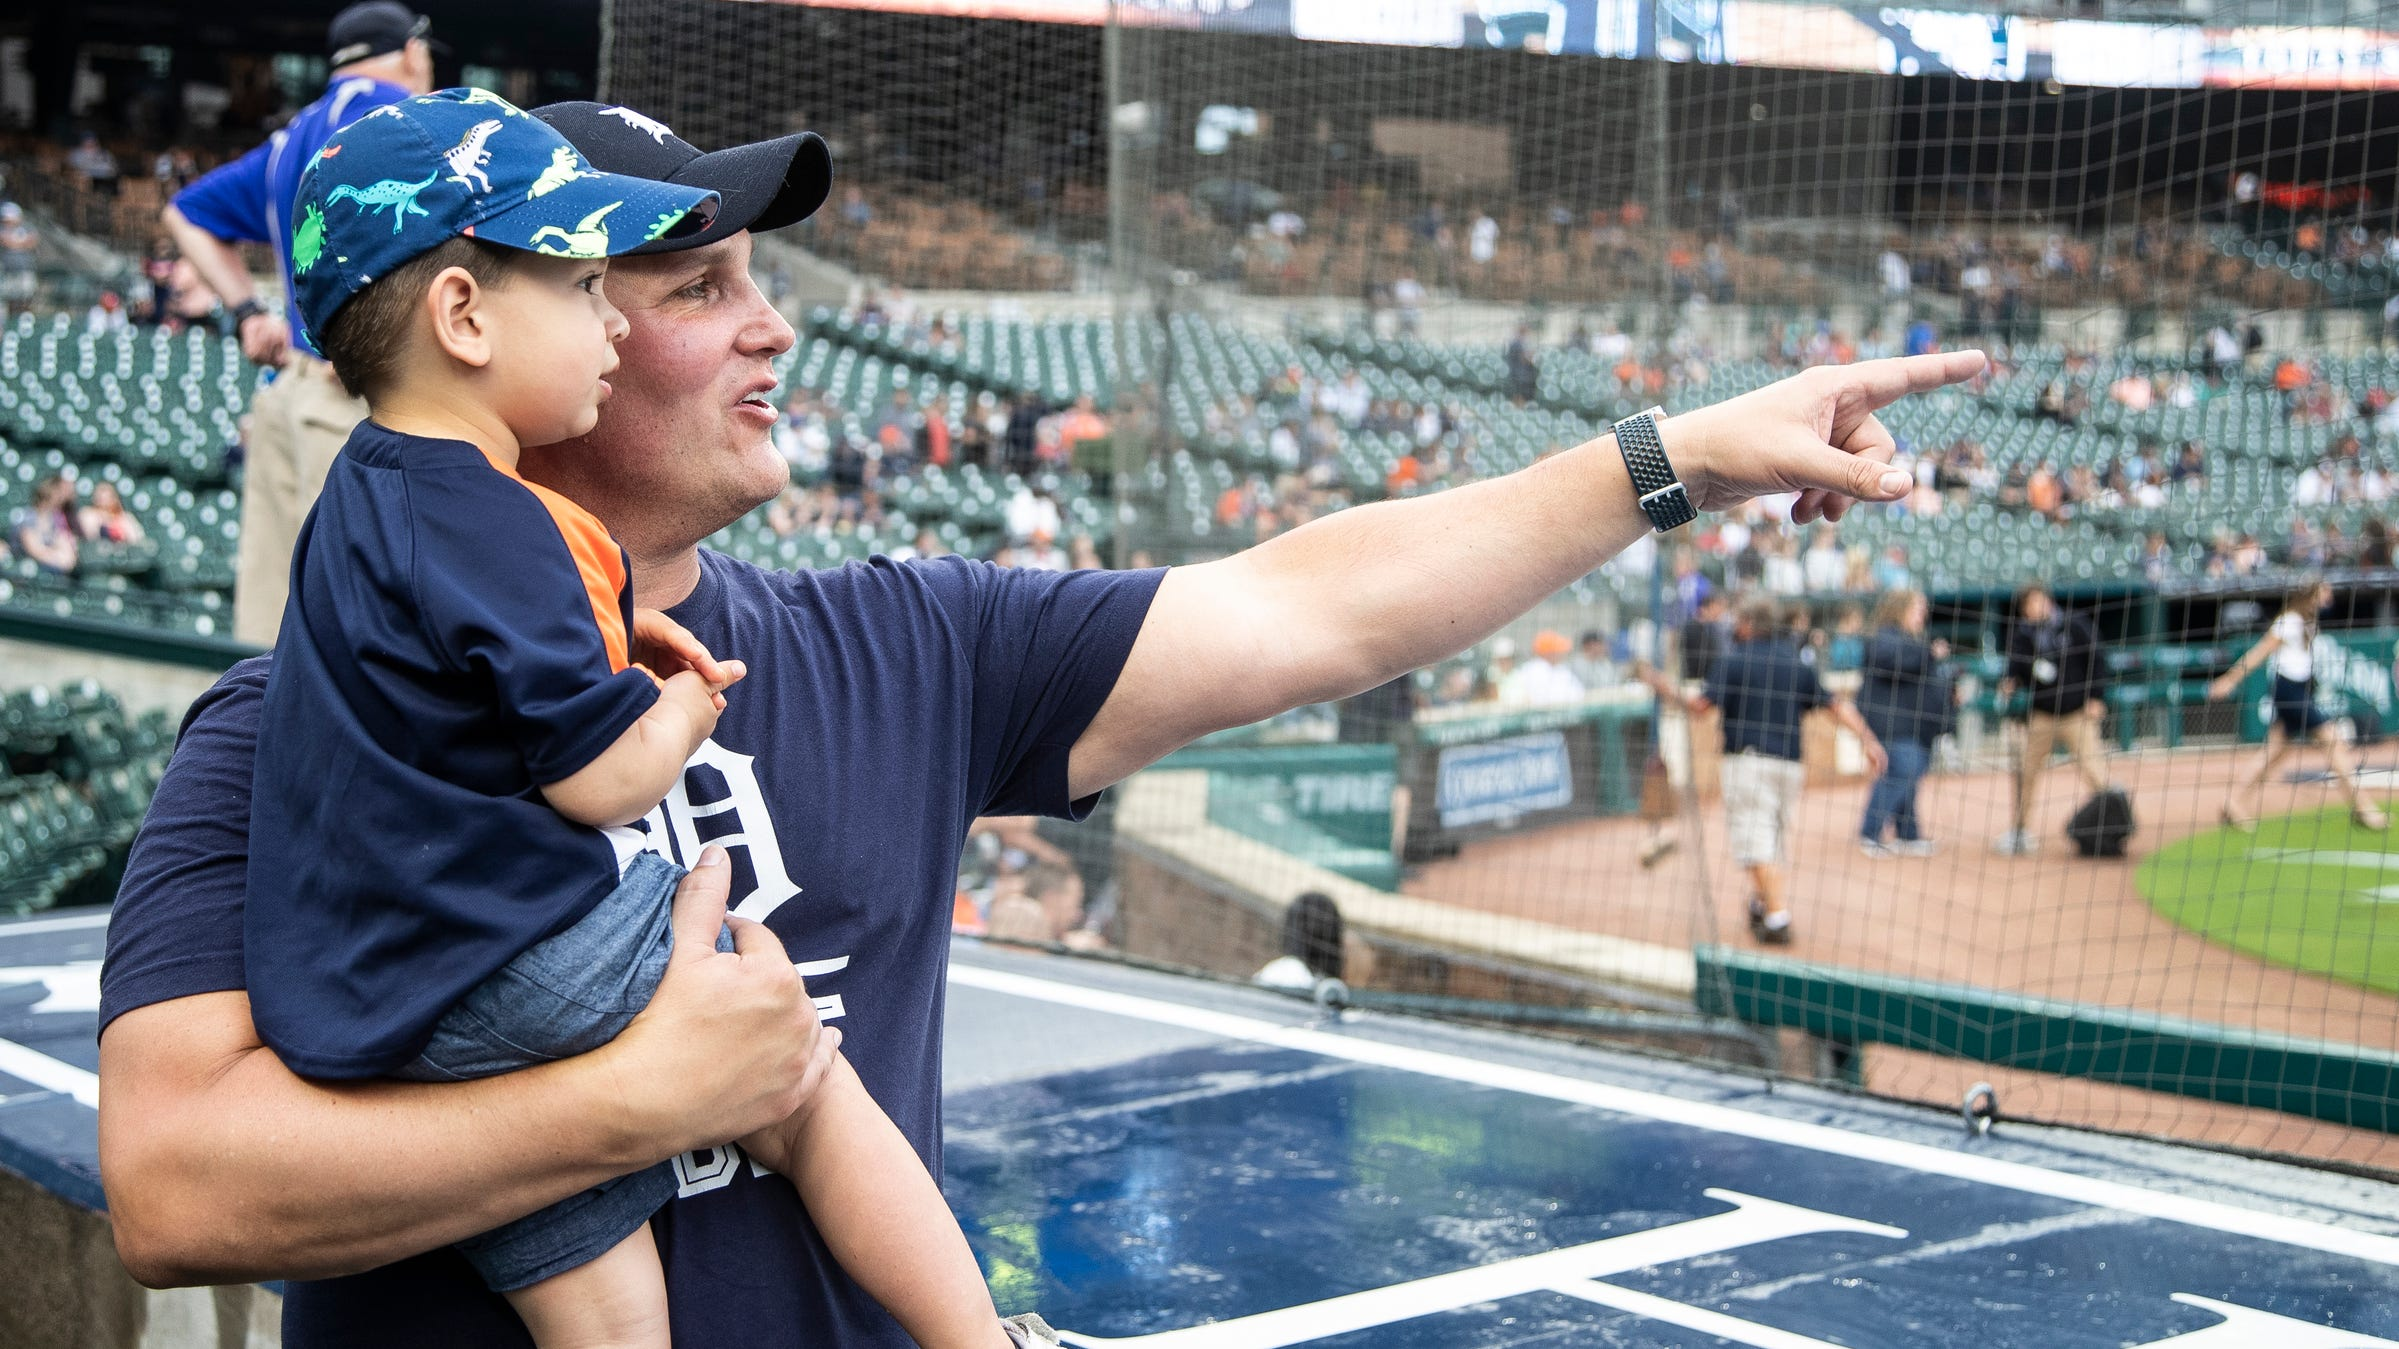 Laurence Buckley and his son Cameron, 2, watch Detroit Tigers players warm up before the game against Seattle Mariners at Comerica Park in Detroit, Tuesday, June 8, 2021.